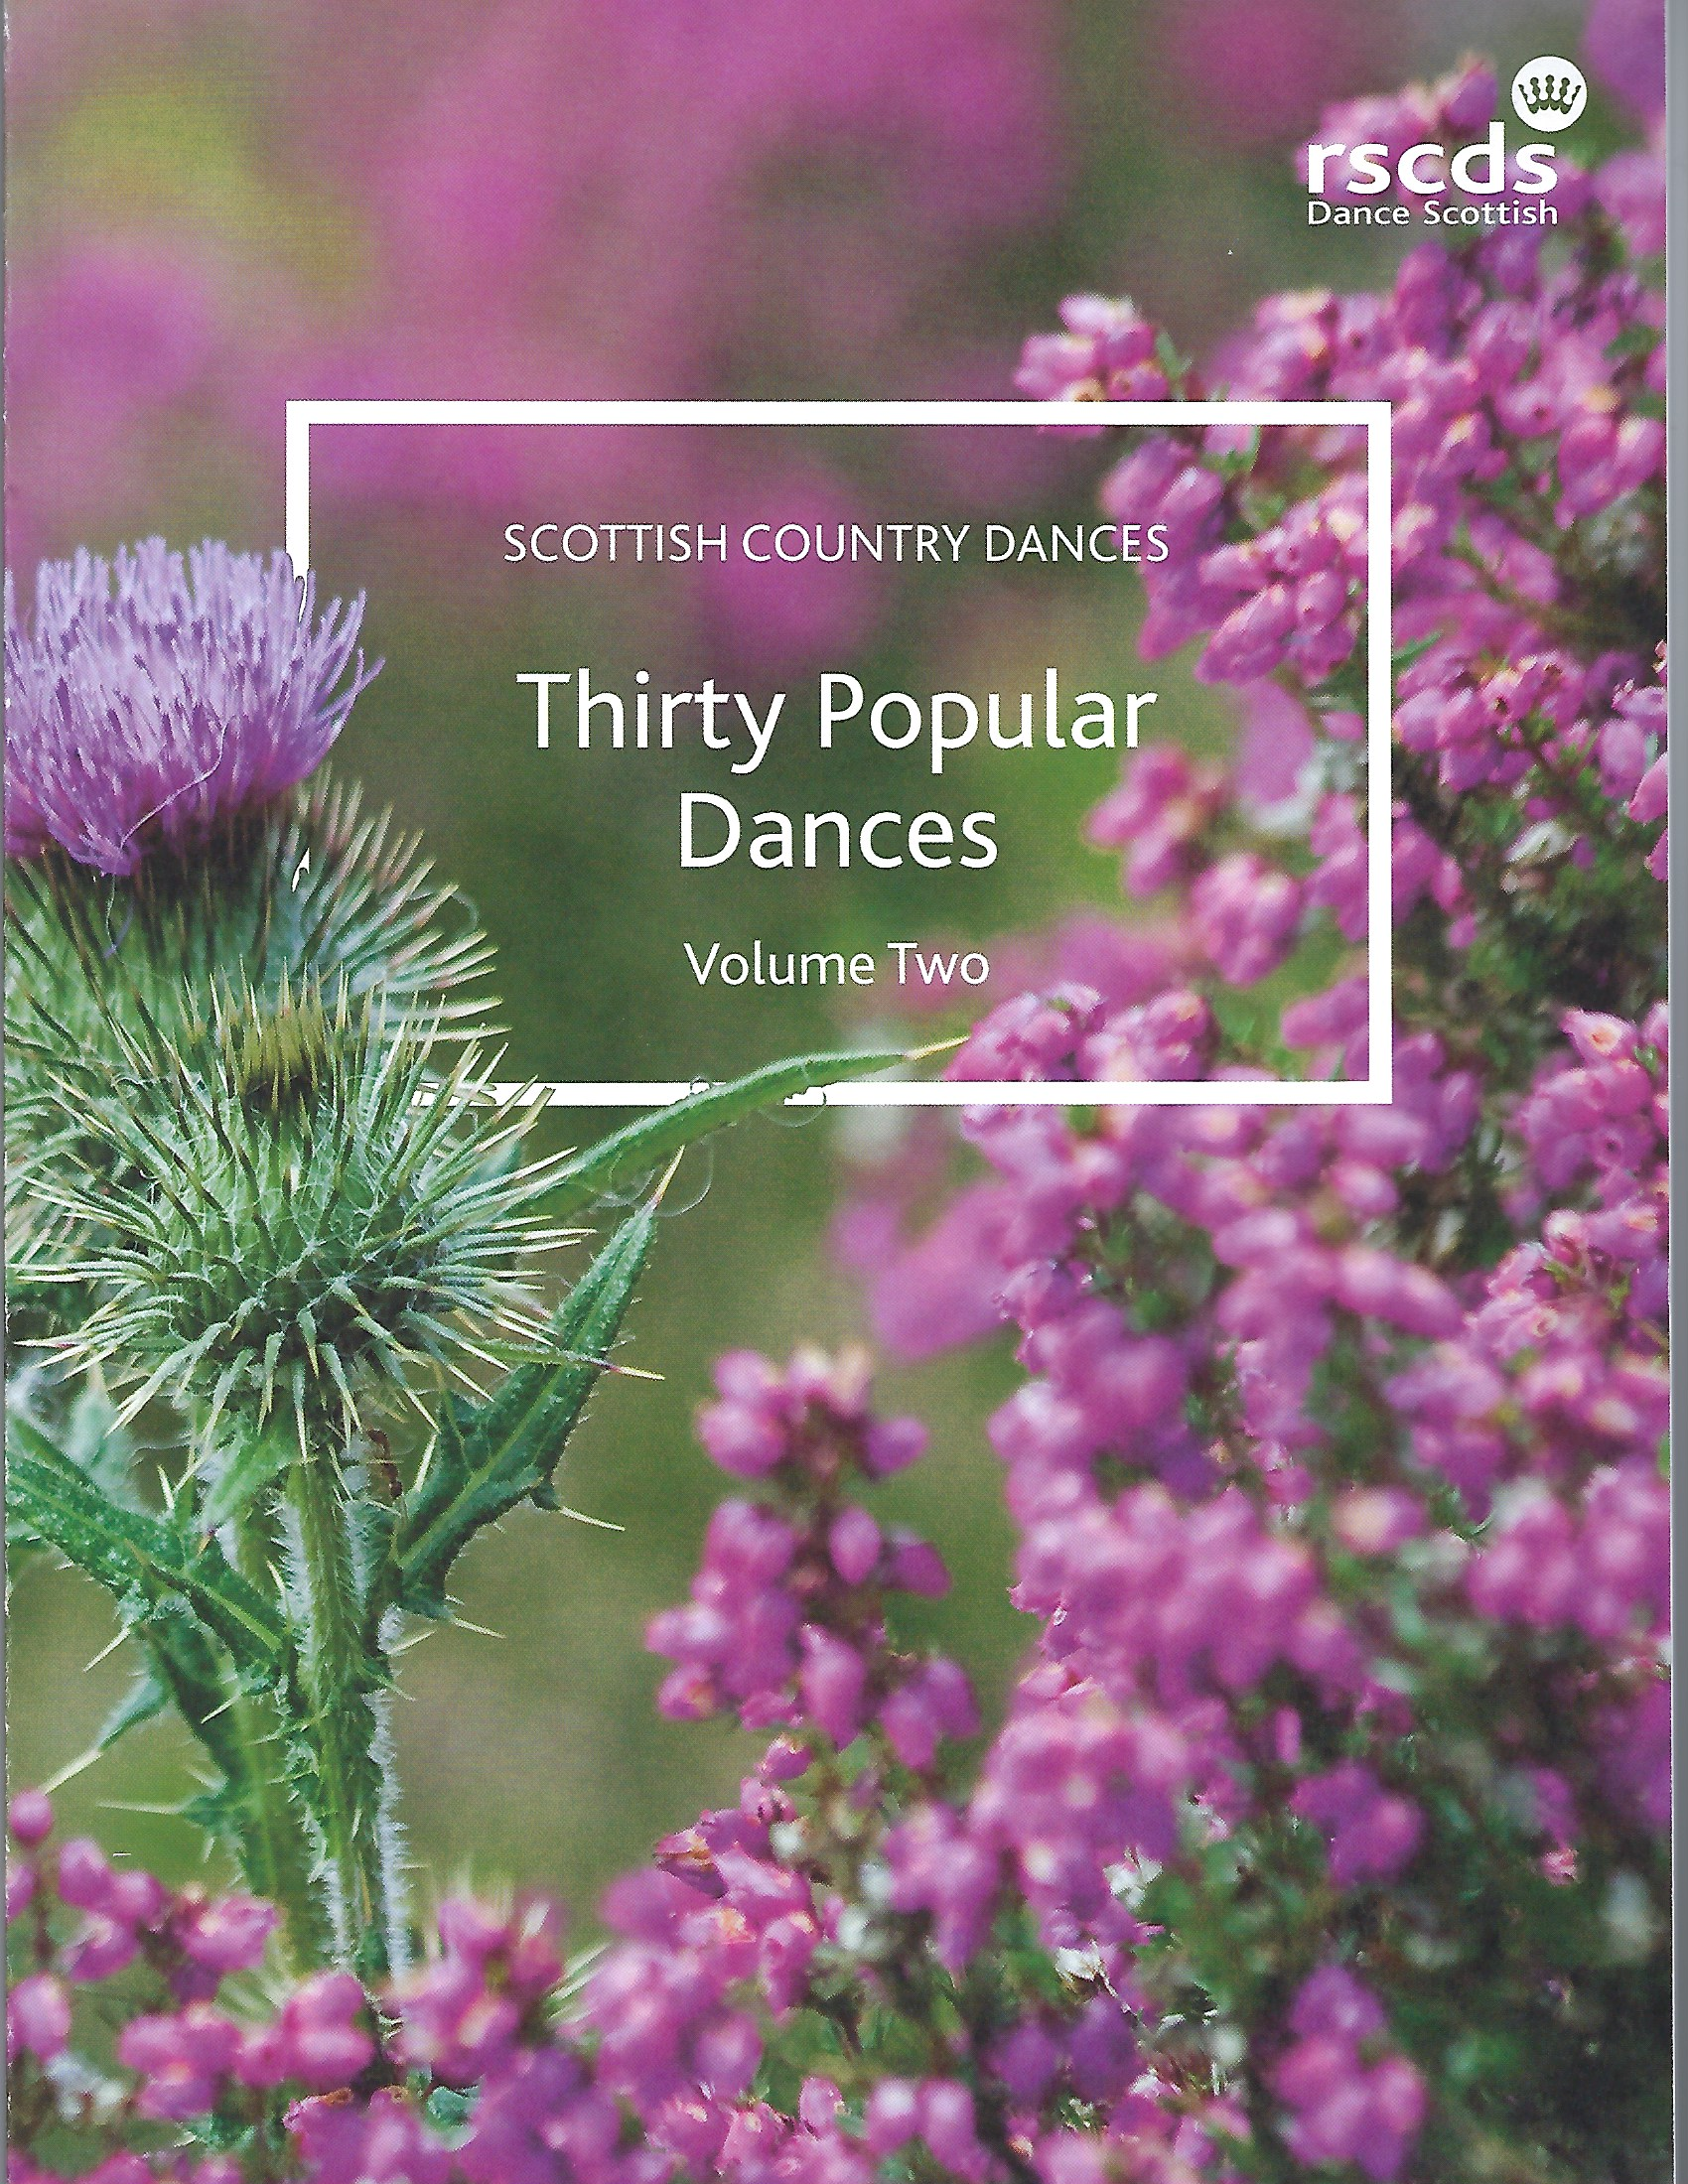 Thirty Popular Dances - Volume Two